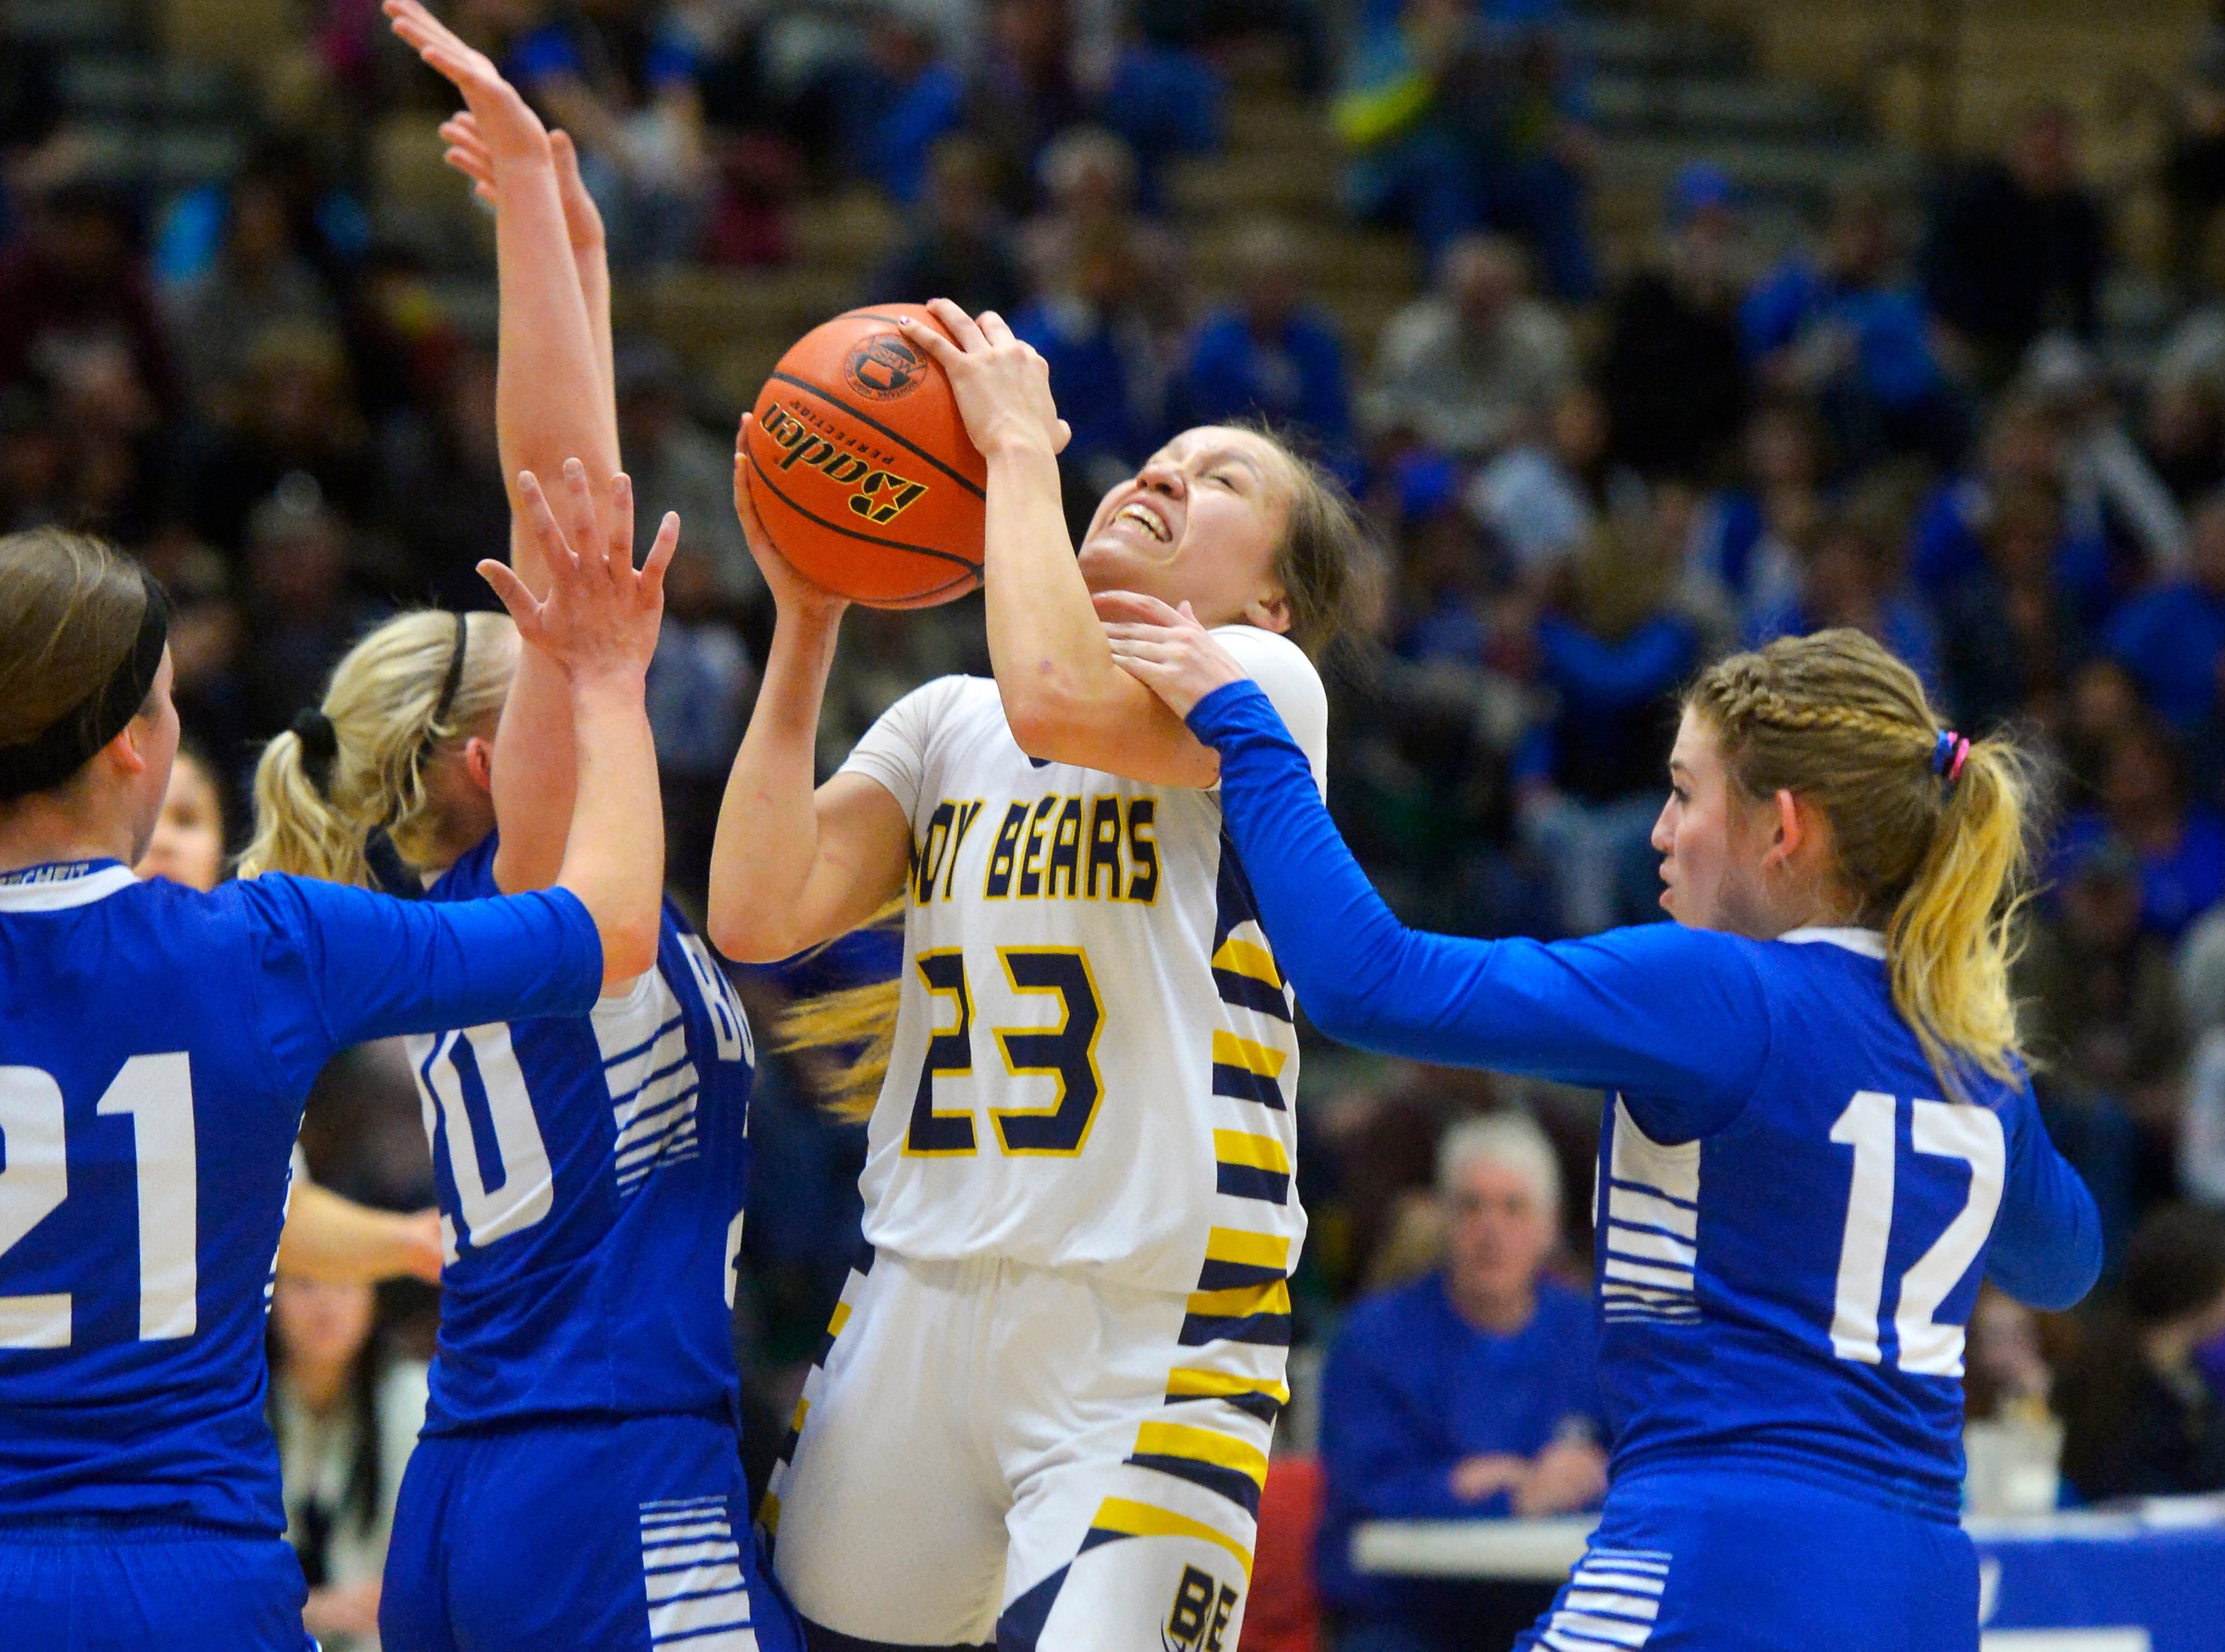 Box Elder's Kayla Momberg draws contact on her shot attempt in Thursday's game against Carter County during the Girls State C Basketball Tournament in the Four Seasons Arena.